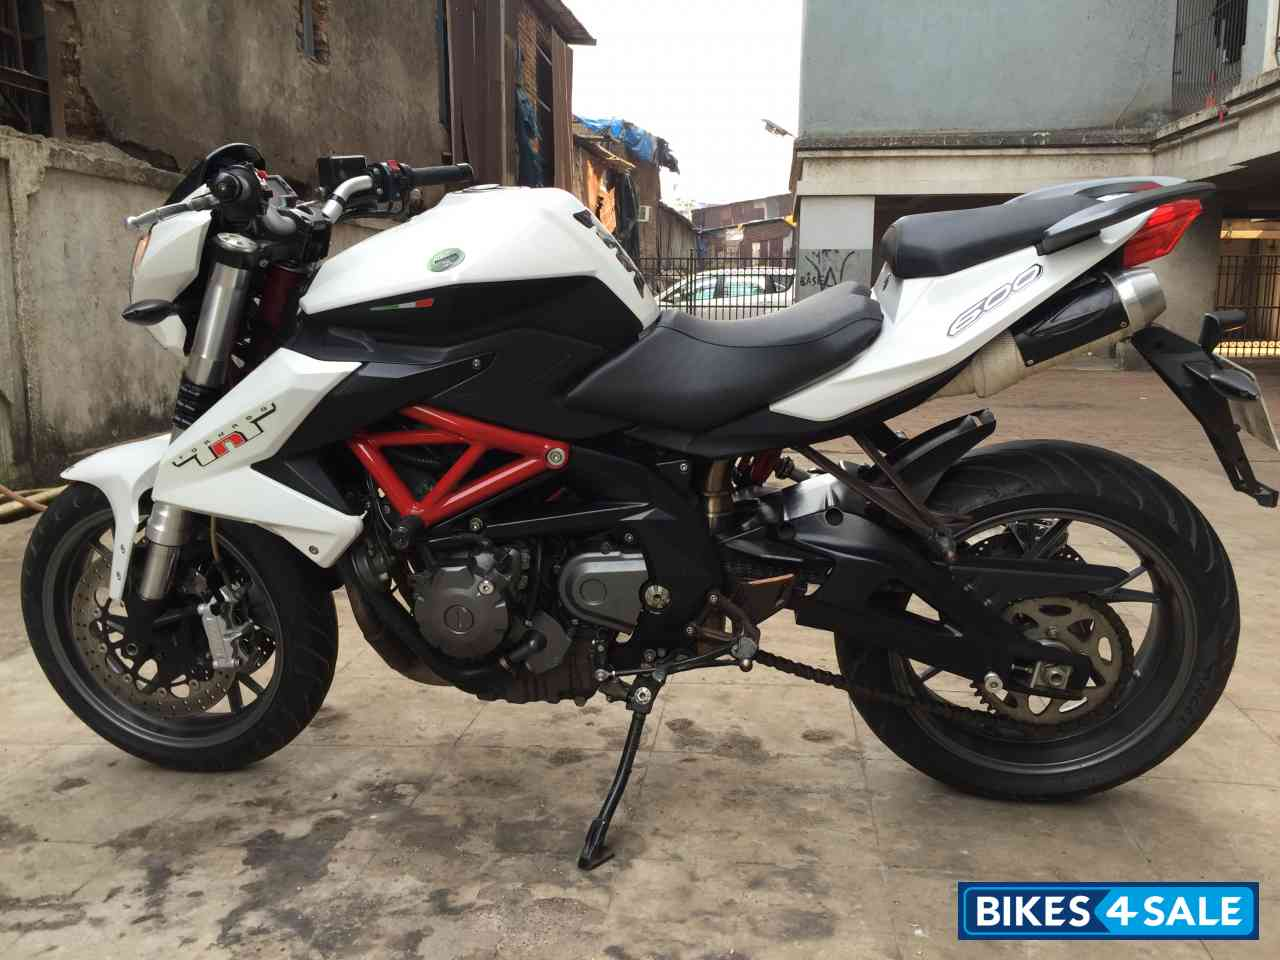 Used 2015 model Benelli TNT 600 i for sale in Mumbai. ID